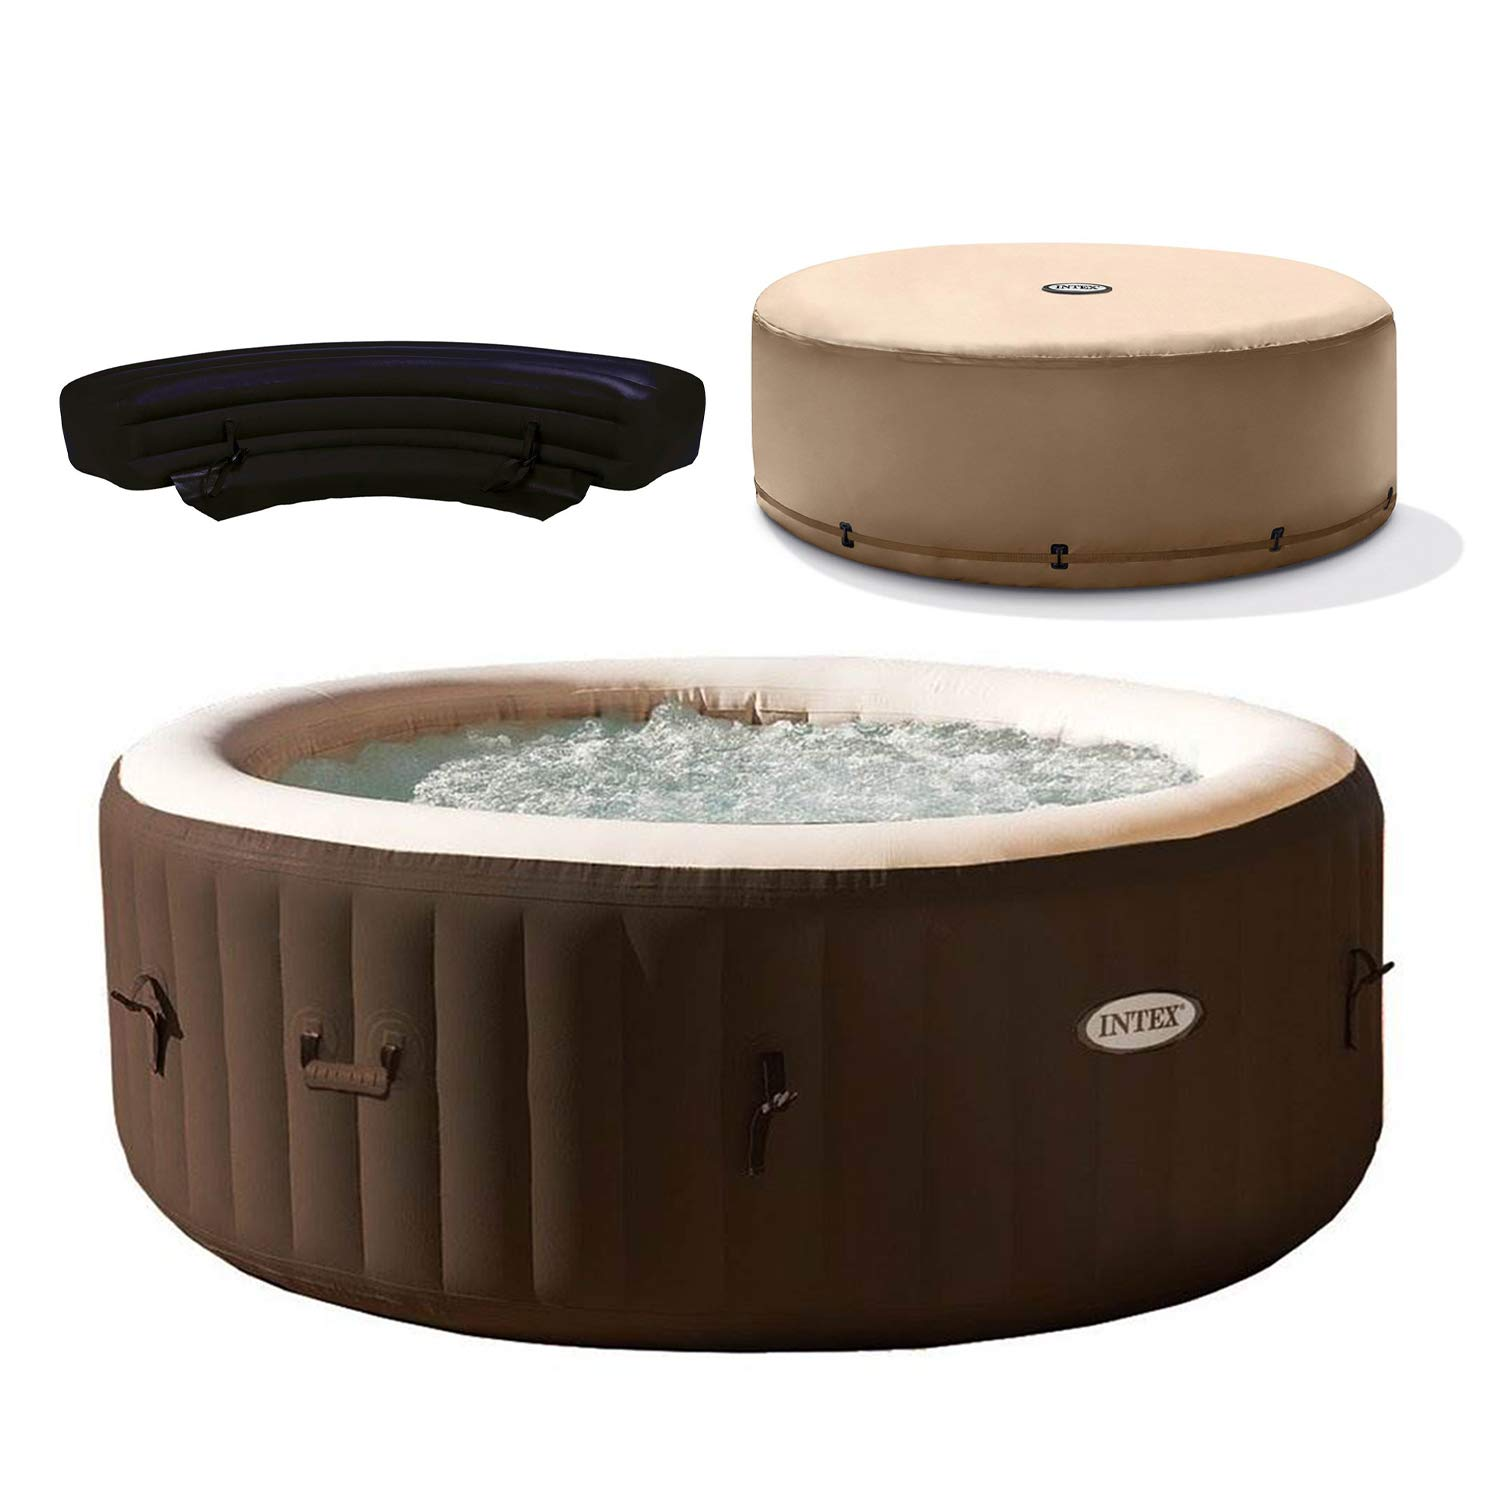 Intex PureSpa Bubble Massage 4 Person Inflatable Hot Tub w/Replacement Cover & Bench Add On